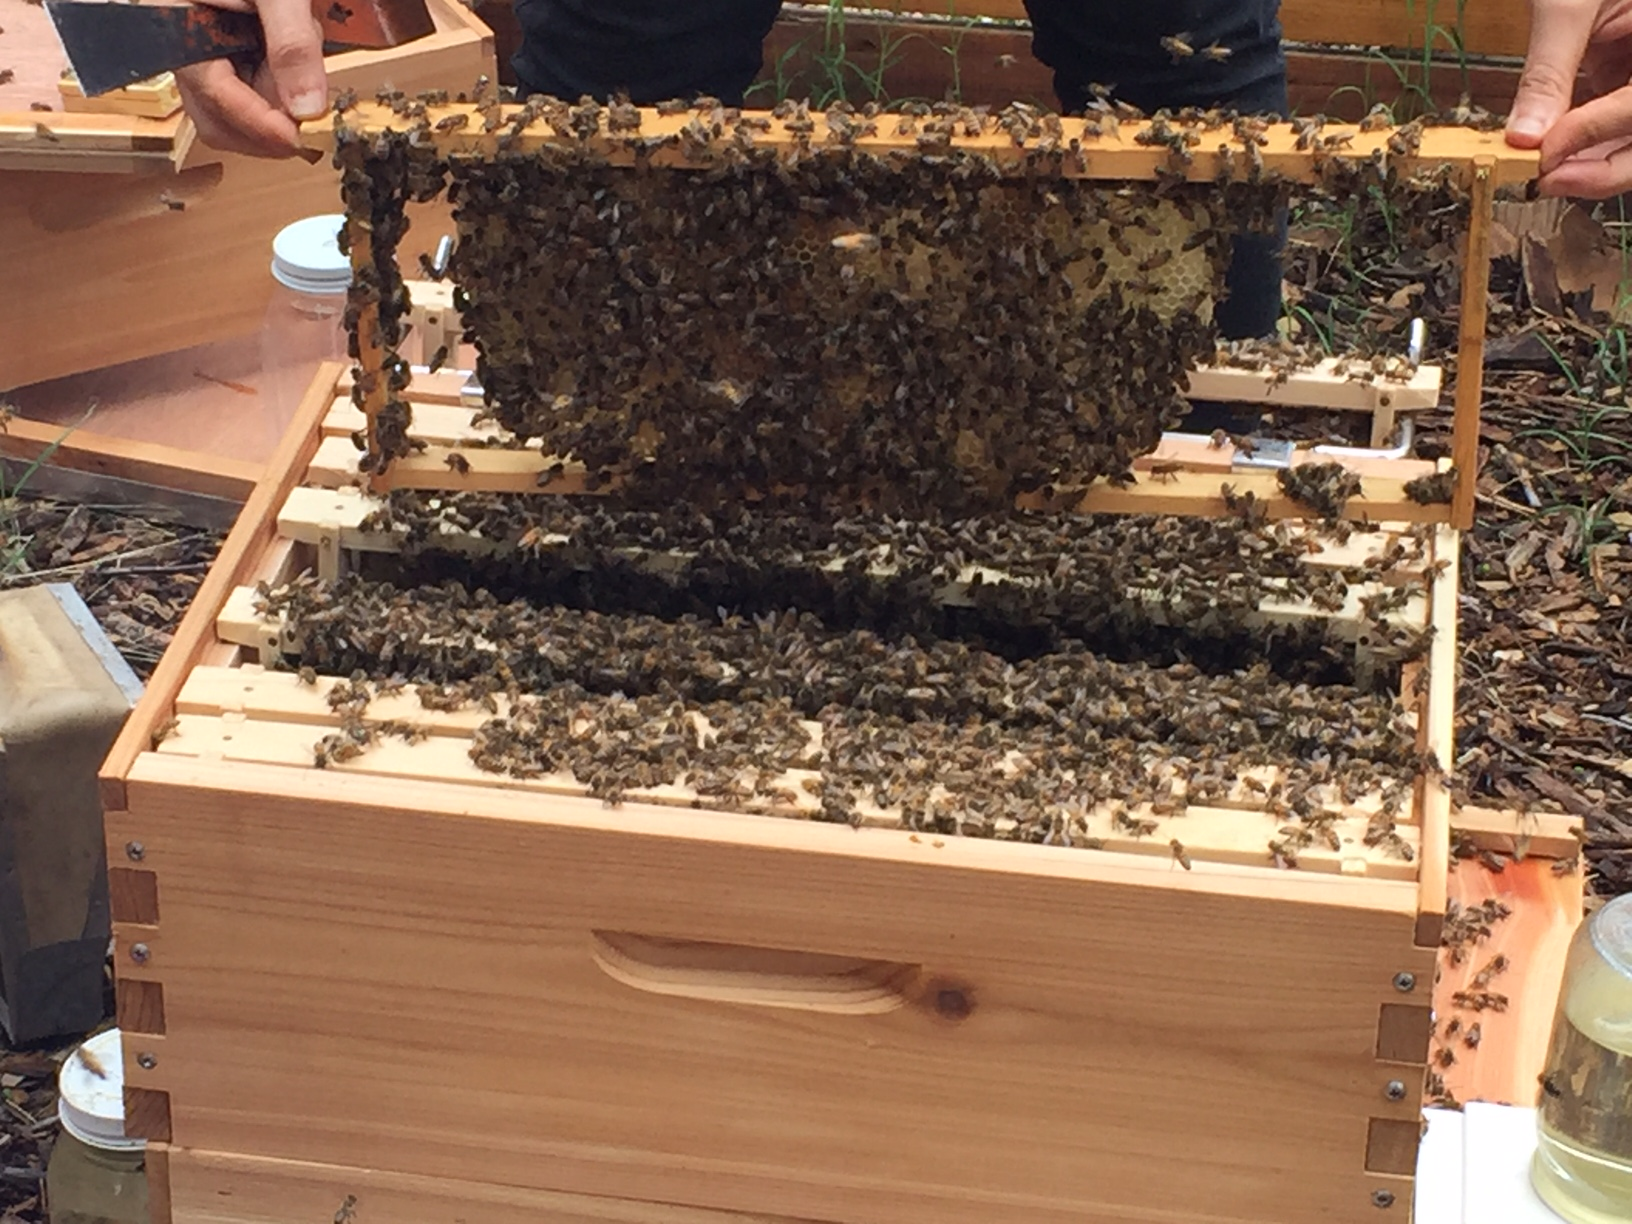 New bee apiary at the Sustainable Food Center. (KXAN Photo)